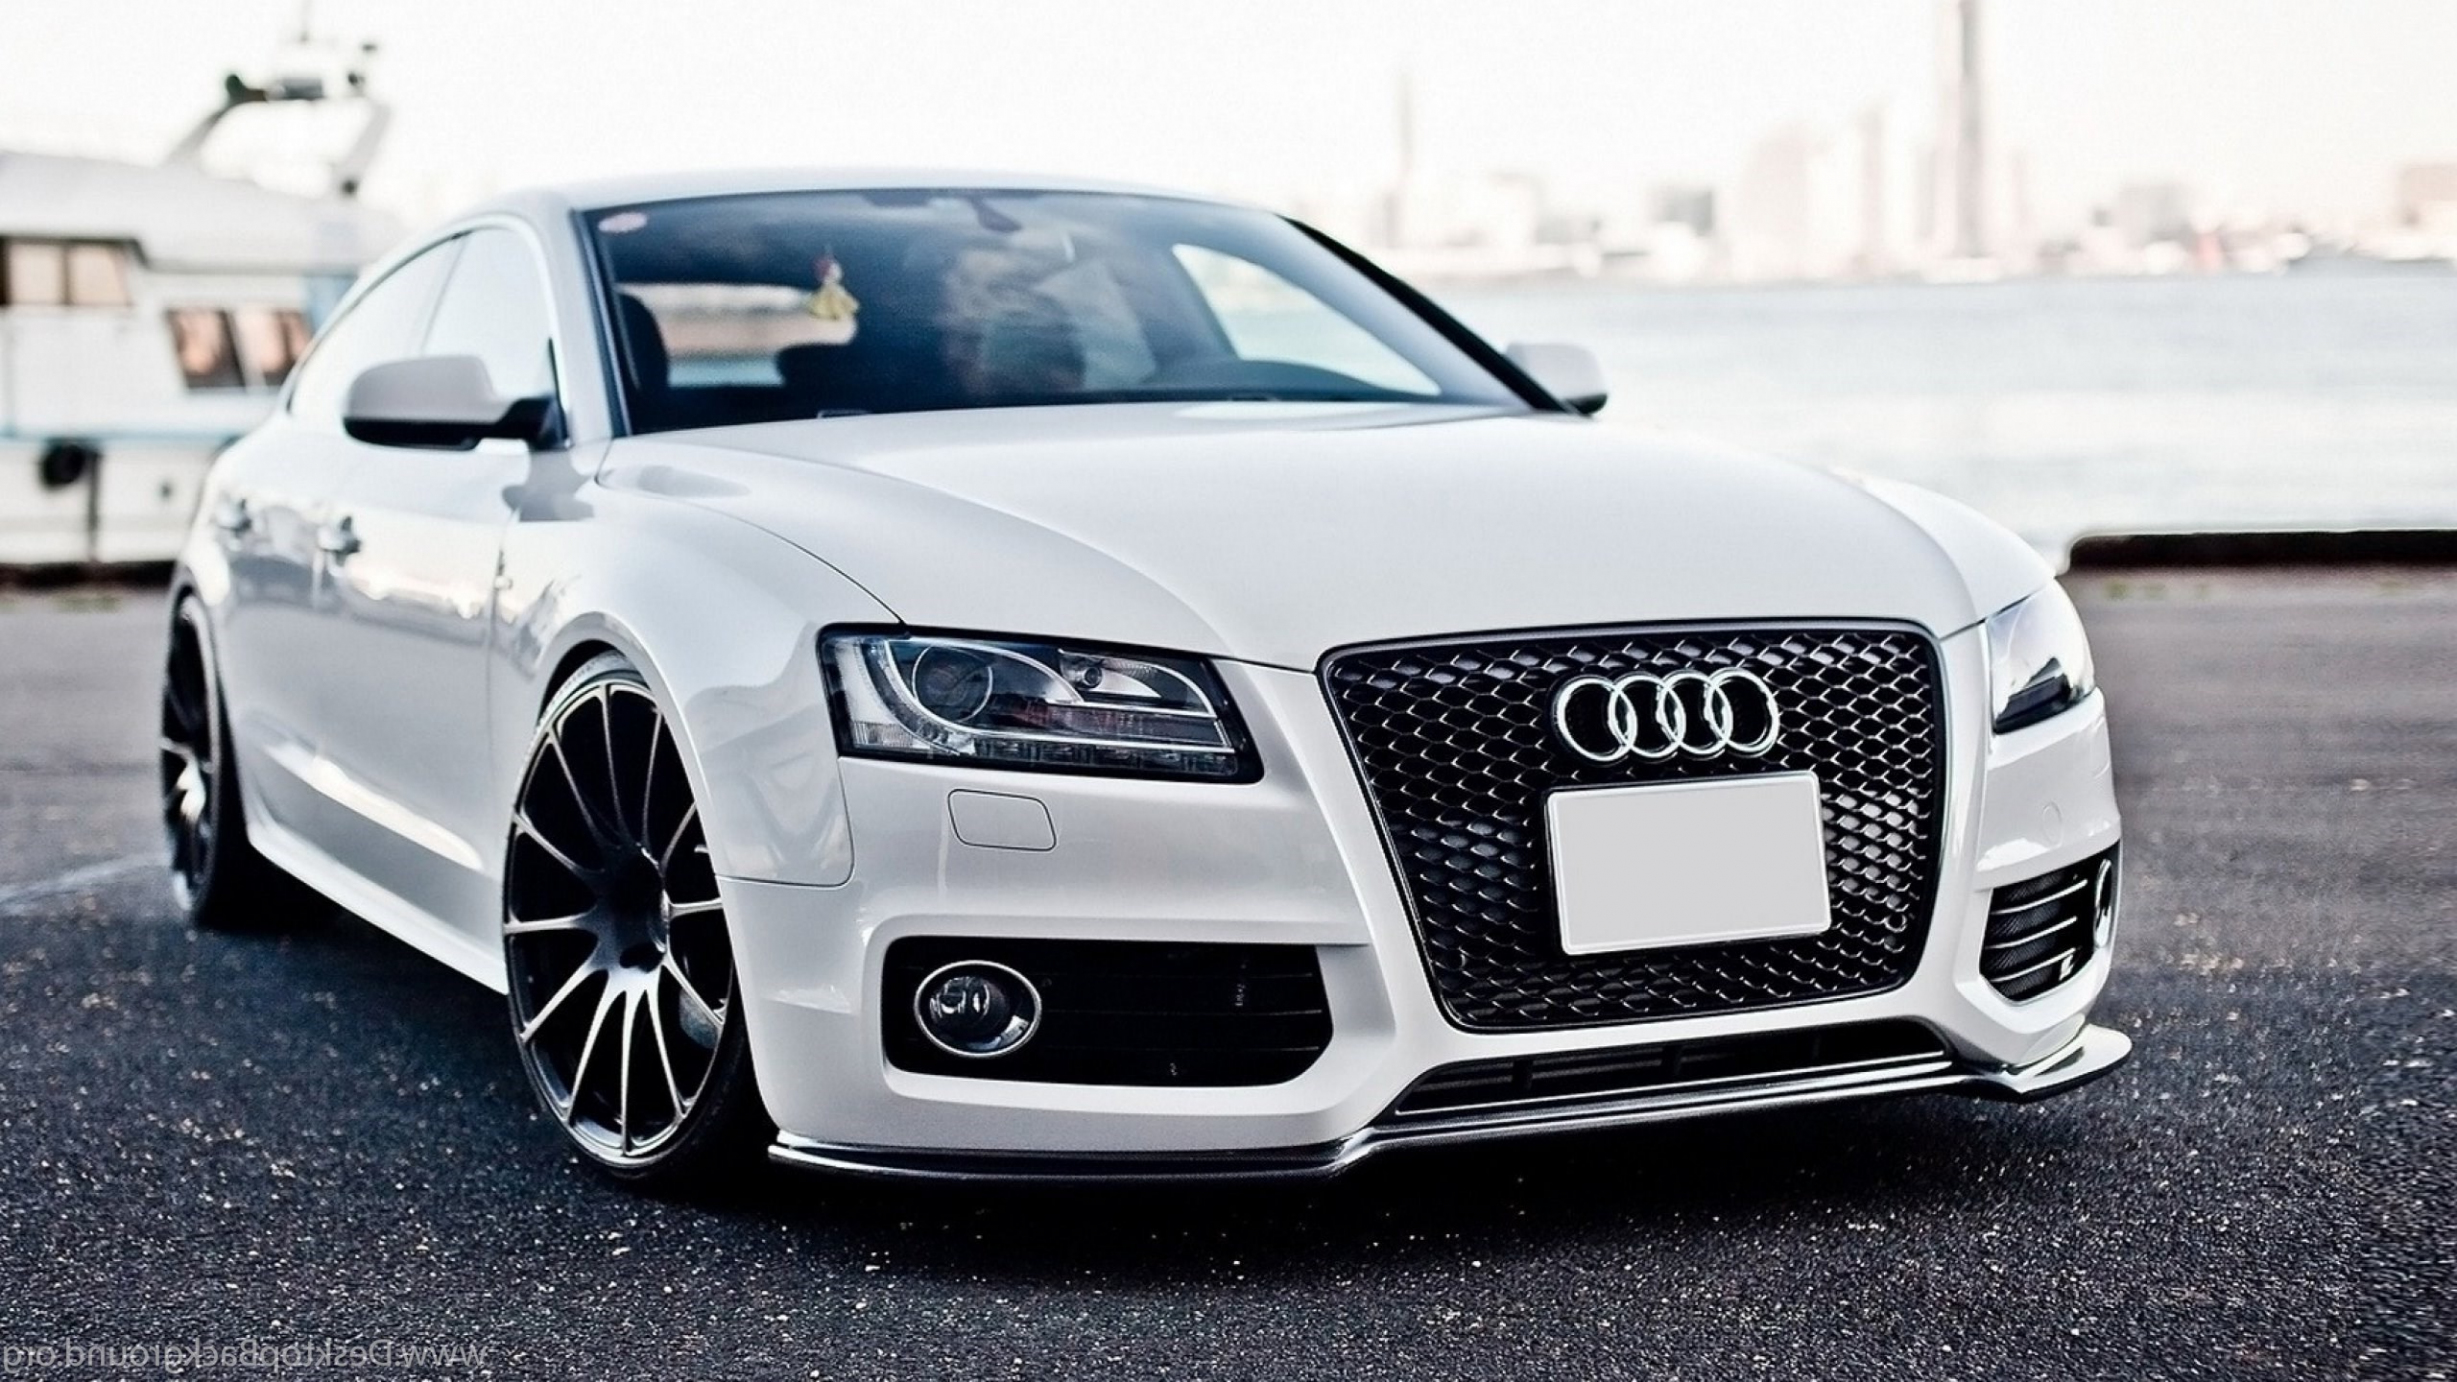 Amazing Audi Car Hd Wallpapers Amazing Photos Amazing Odi